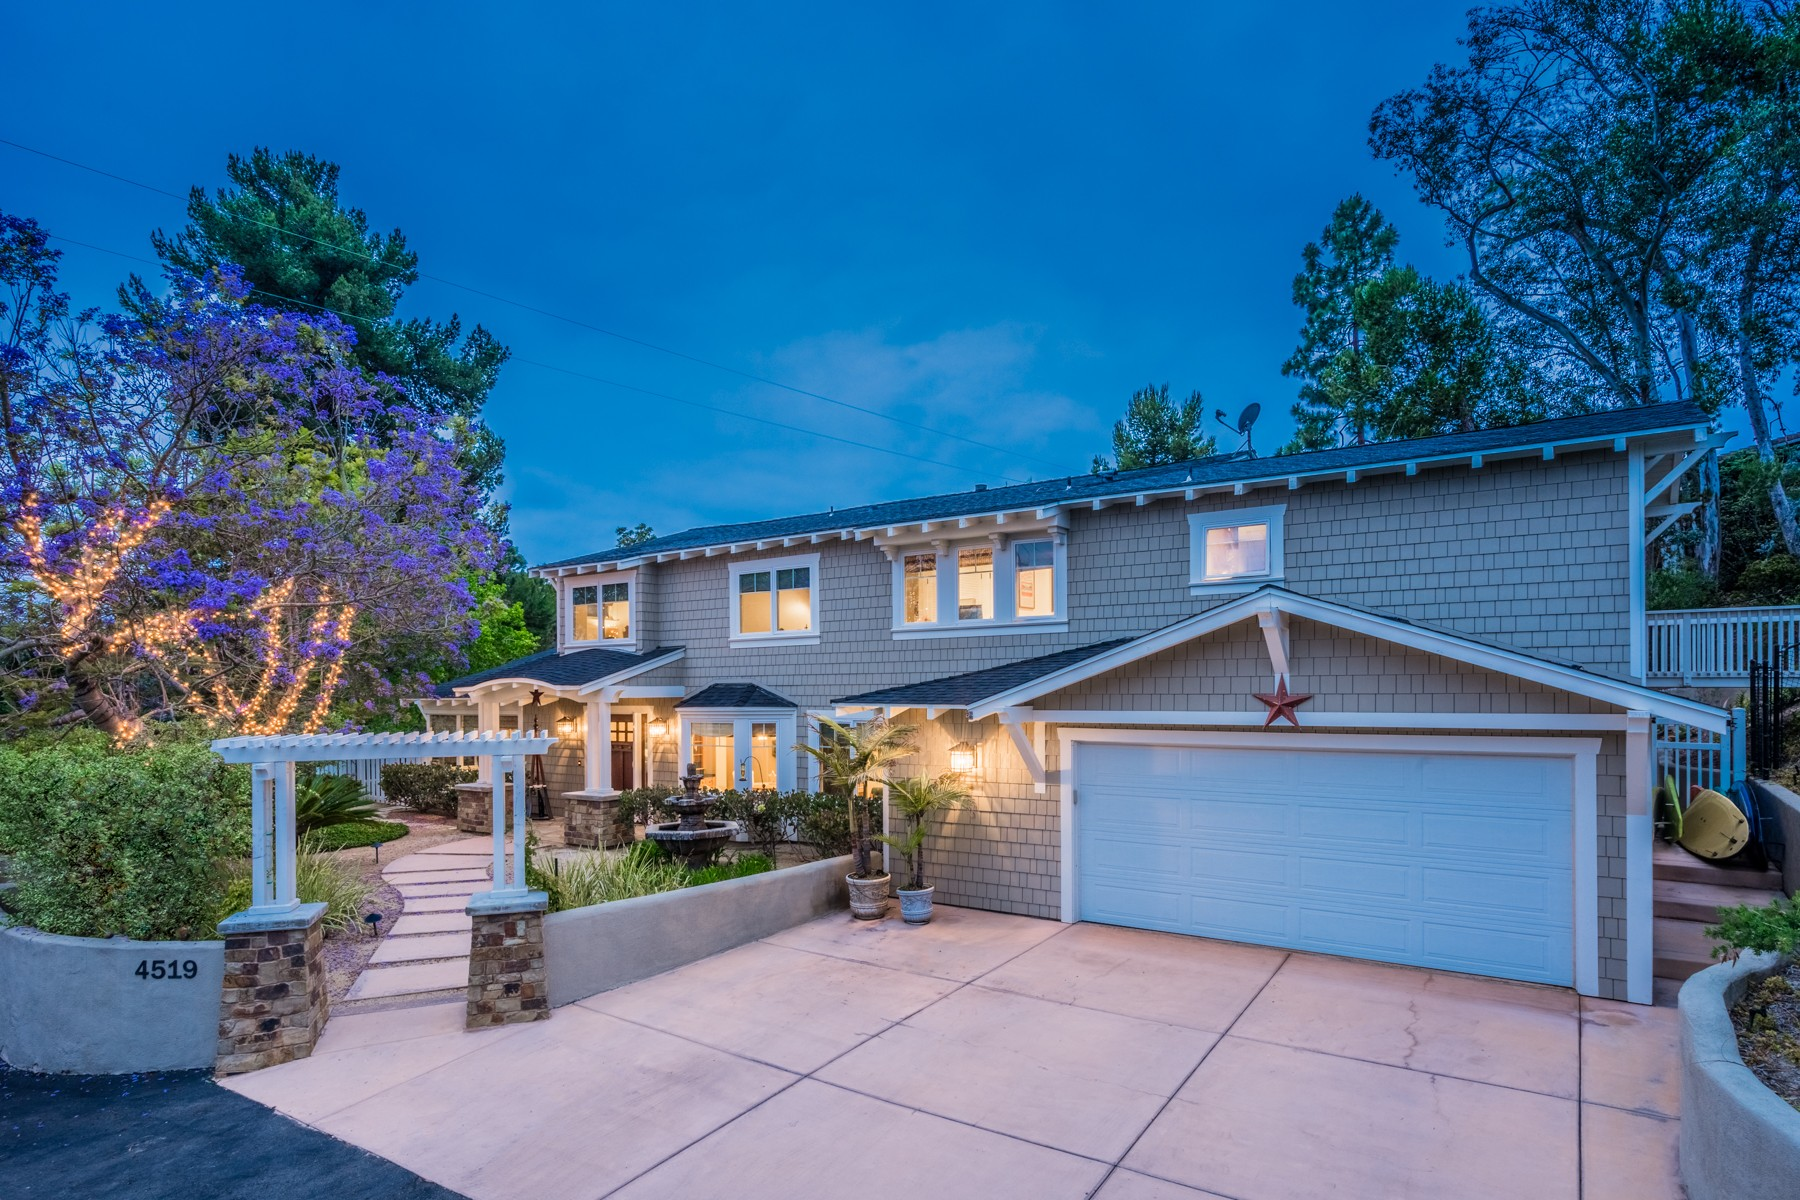 Single Family Home for Sale at 4519 Sun Valley Road Del Mar, California, 92014 United States